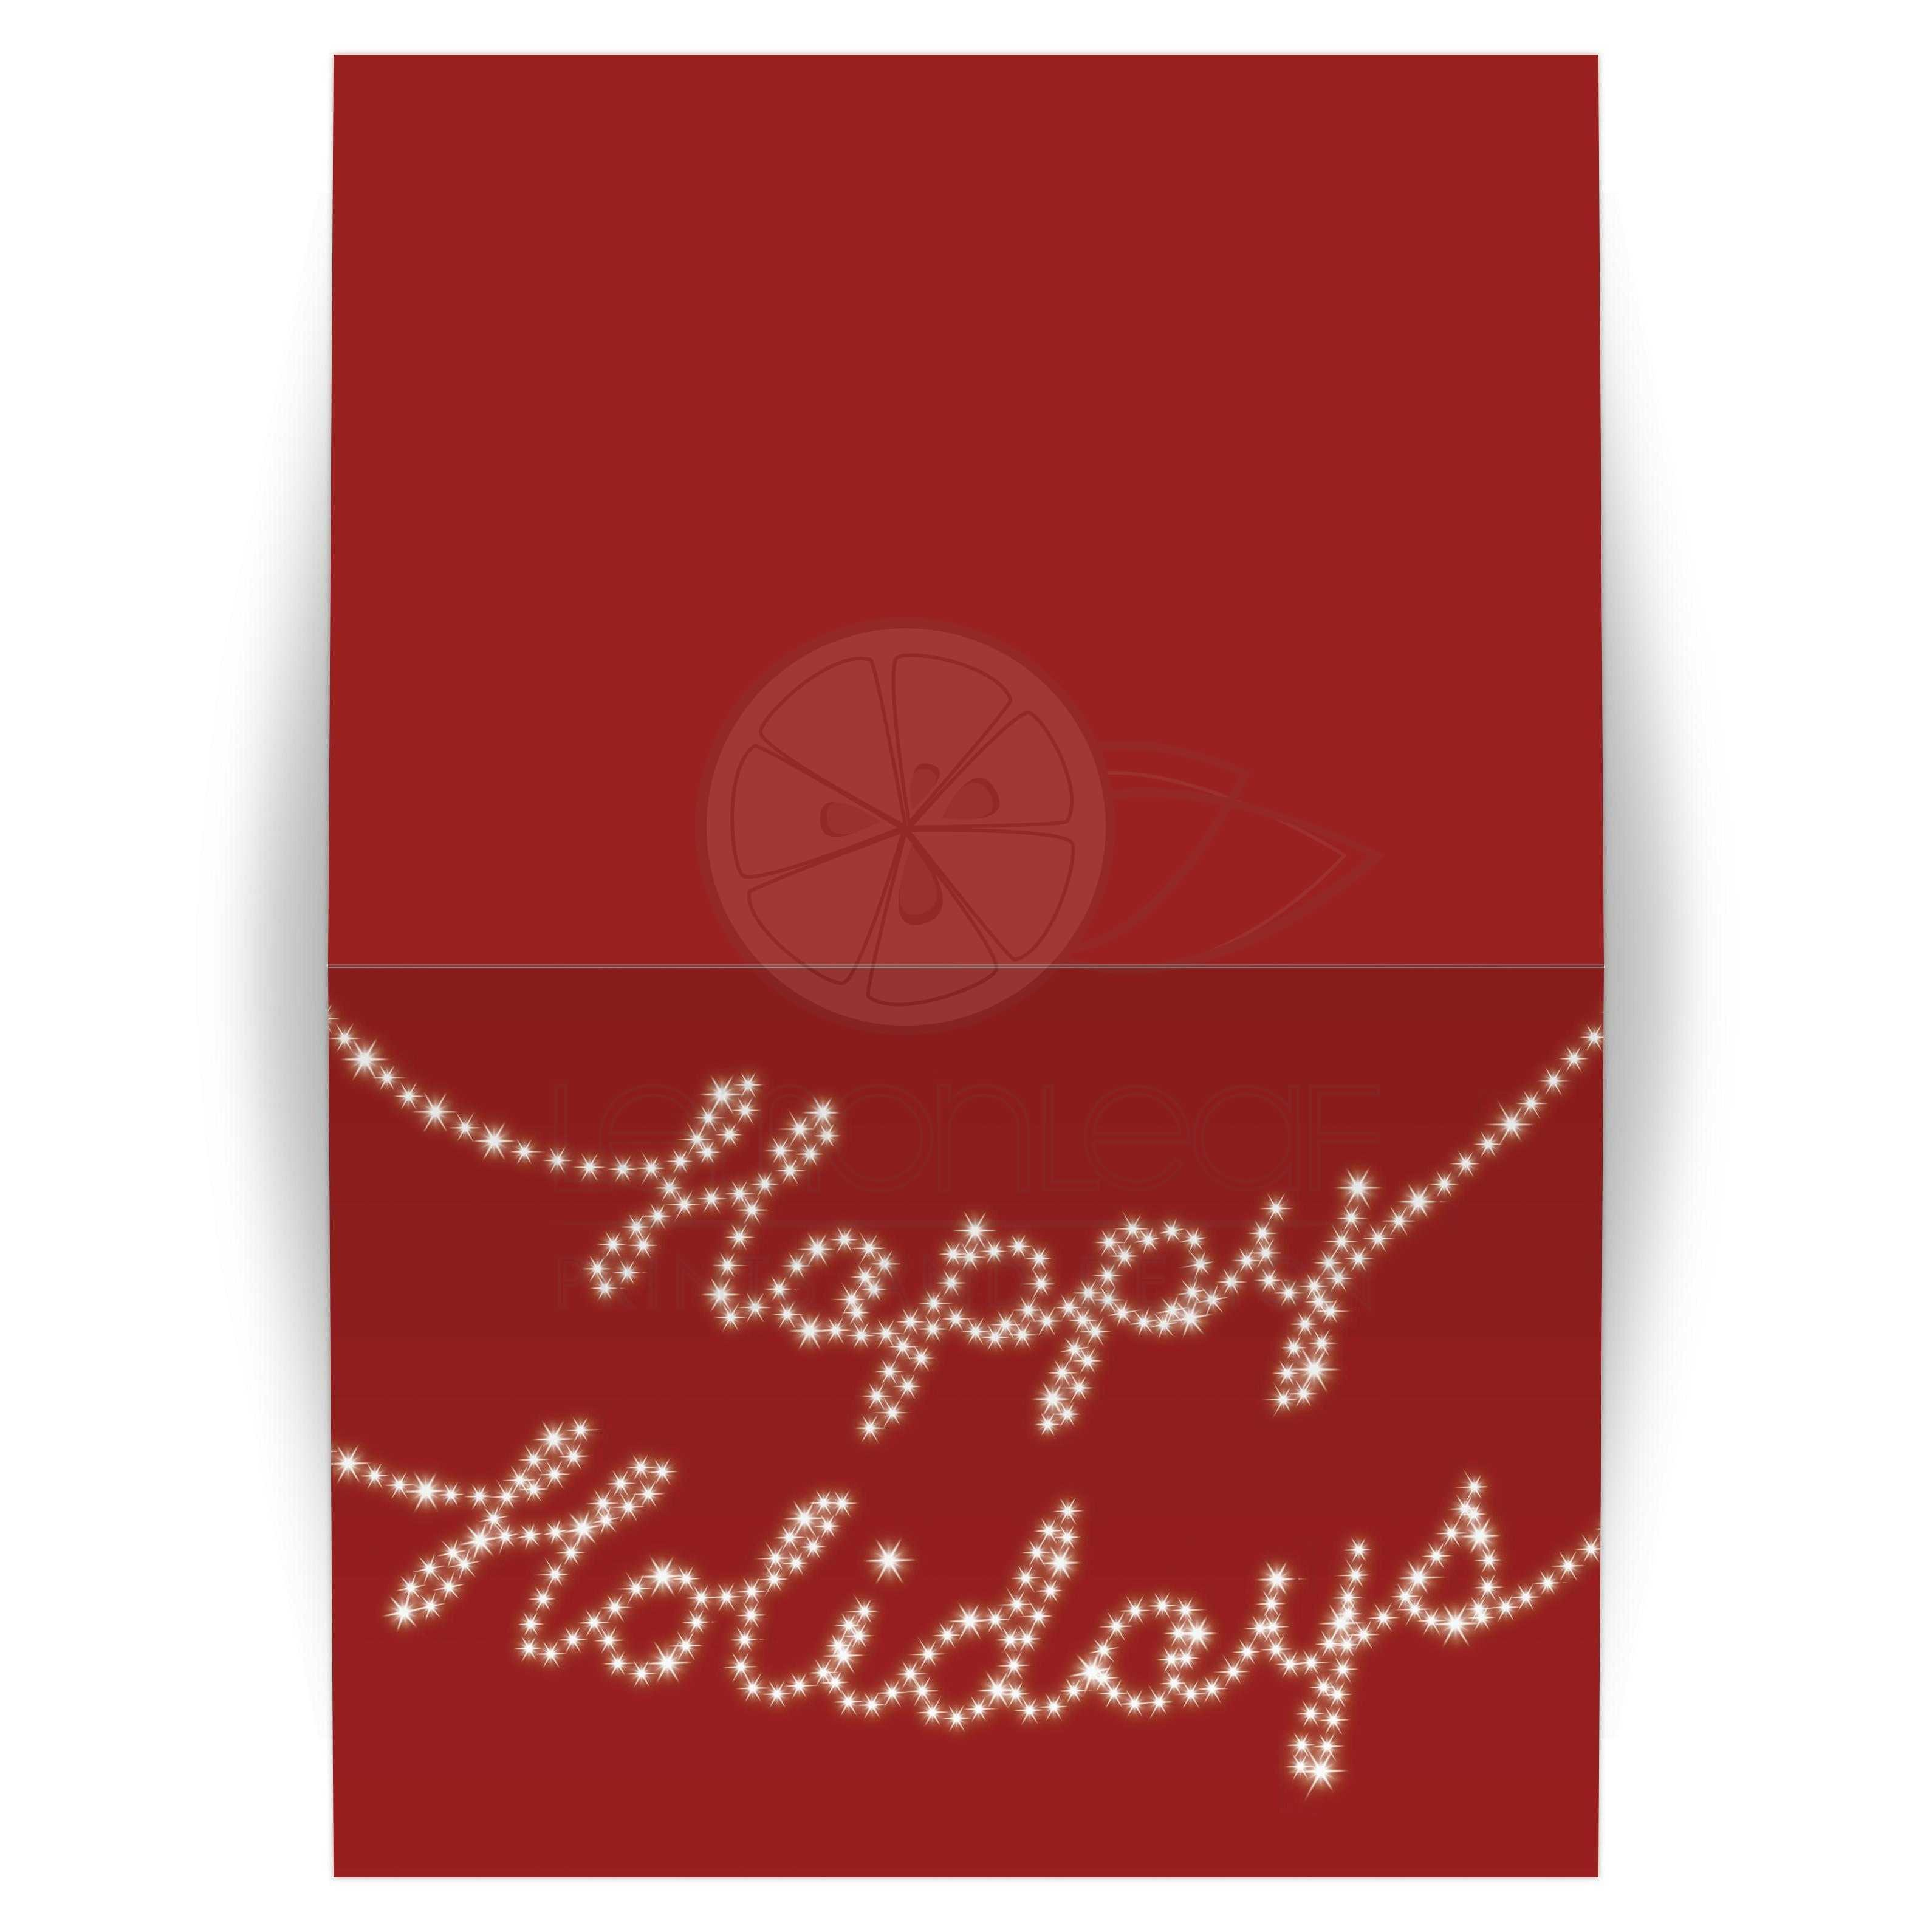 happy holidays written in christmas lights on red background - Happy Holidays Card